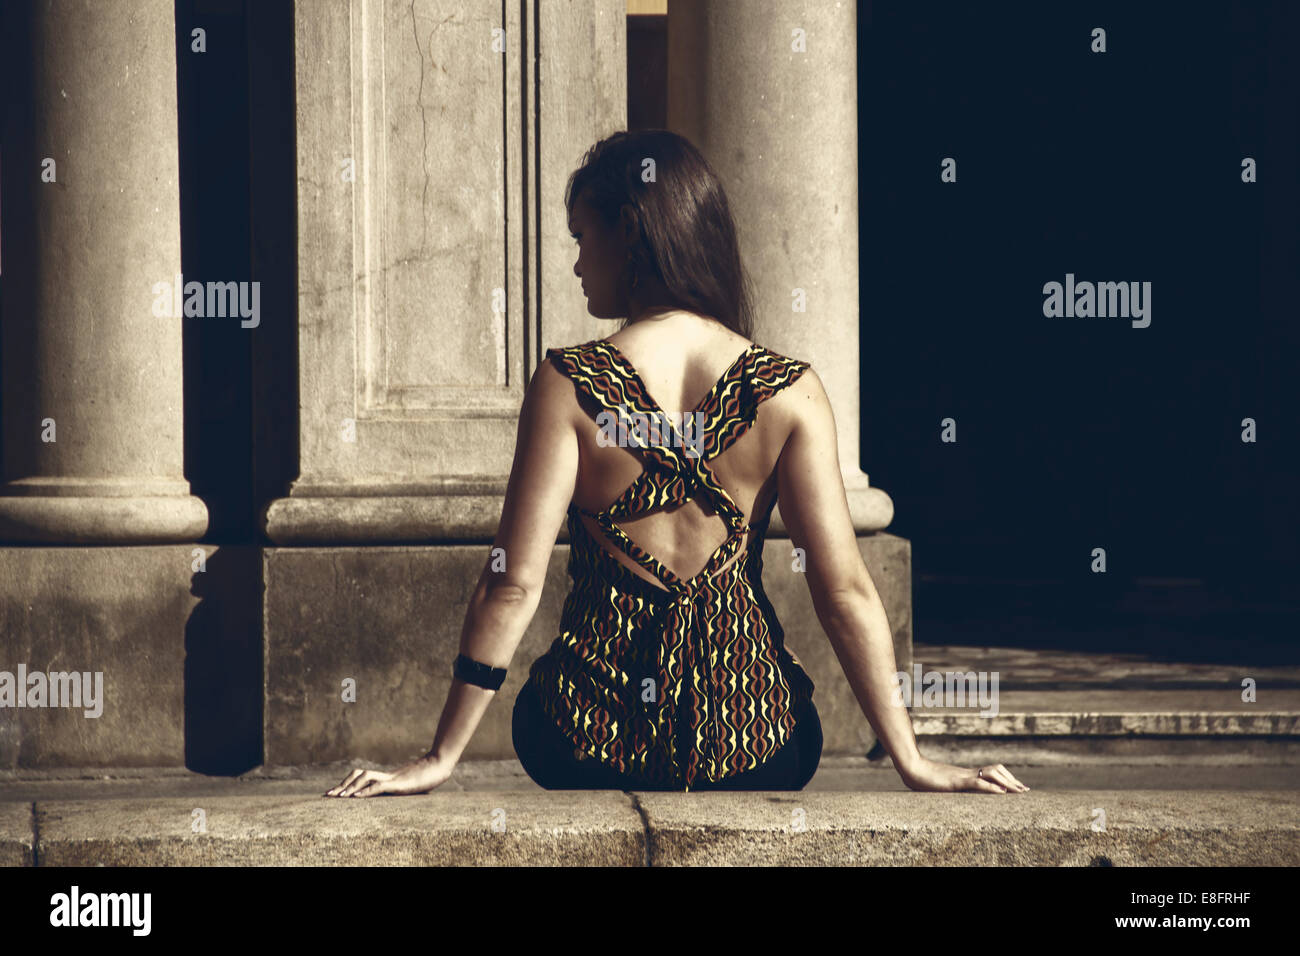 Rear view of woman sitting on a wall - Stock Image